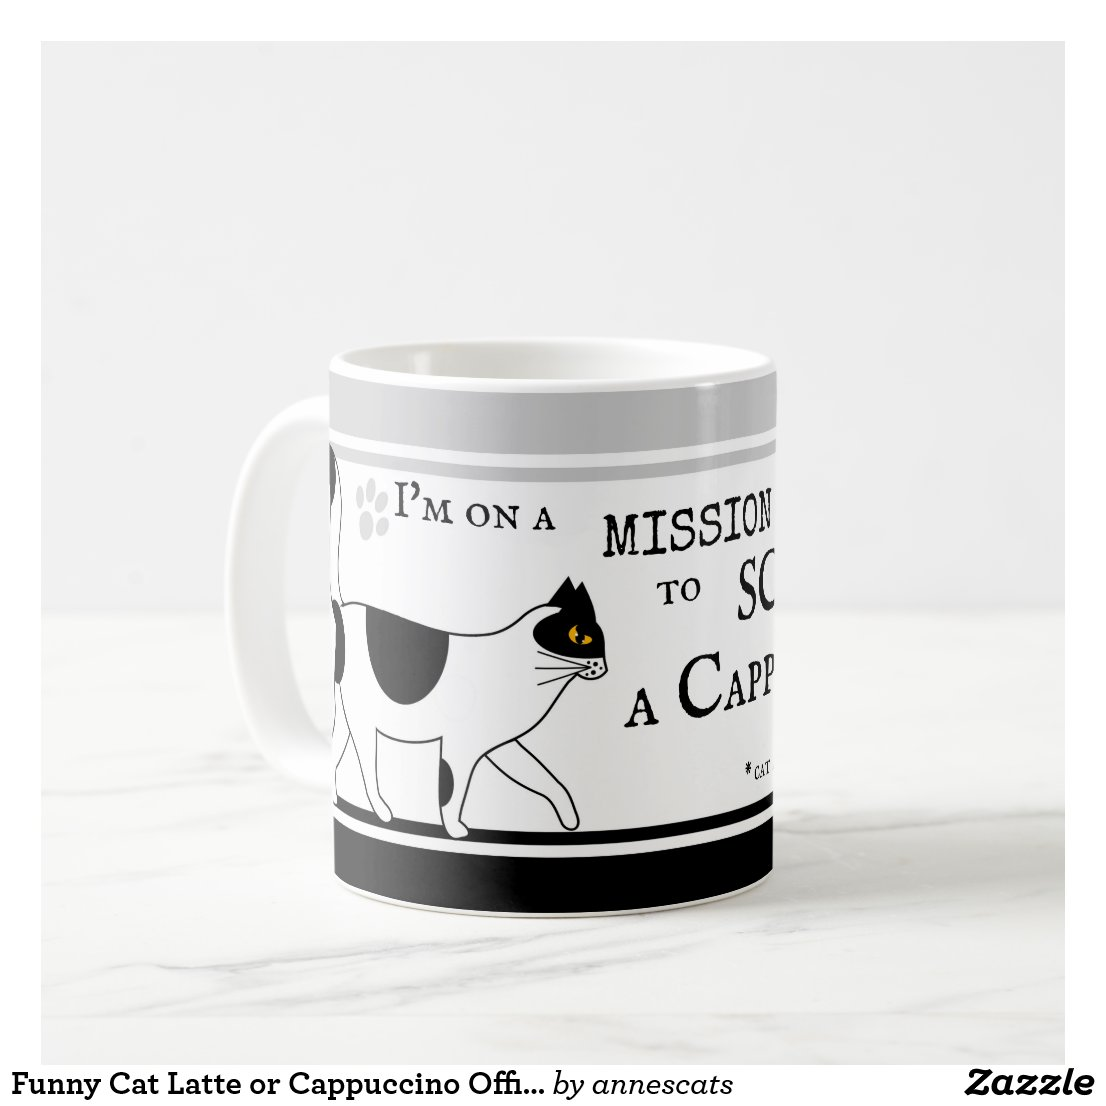 Funny Cat Latte or Cappuccino Office Mug